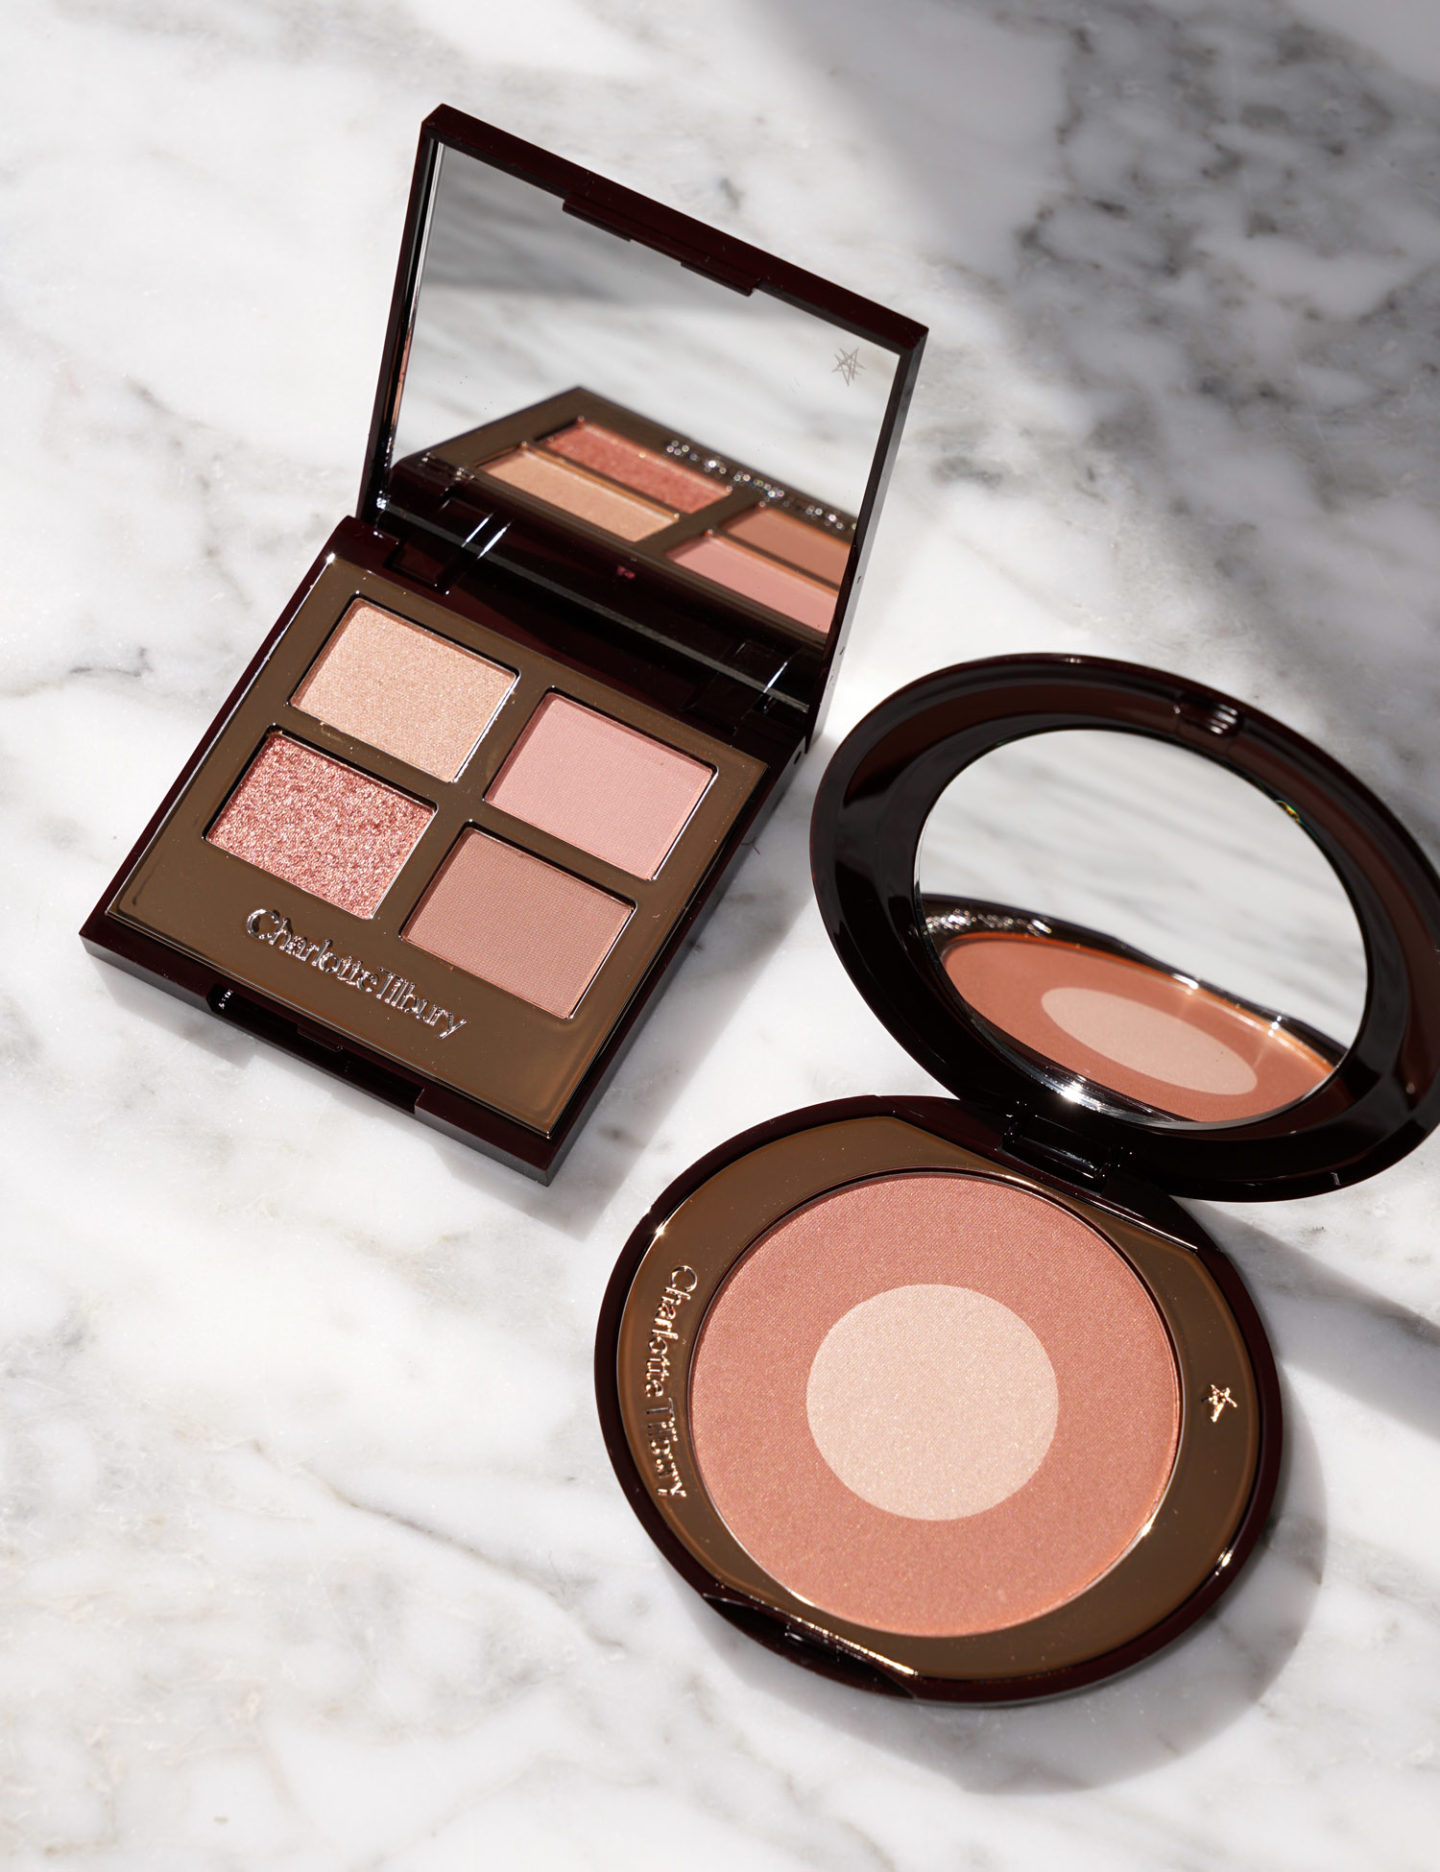 Charlotte Tilbury Pillow Talk Eyeshadow and Cheek to Chic Blush Review | The Beauty Look Book